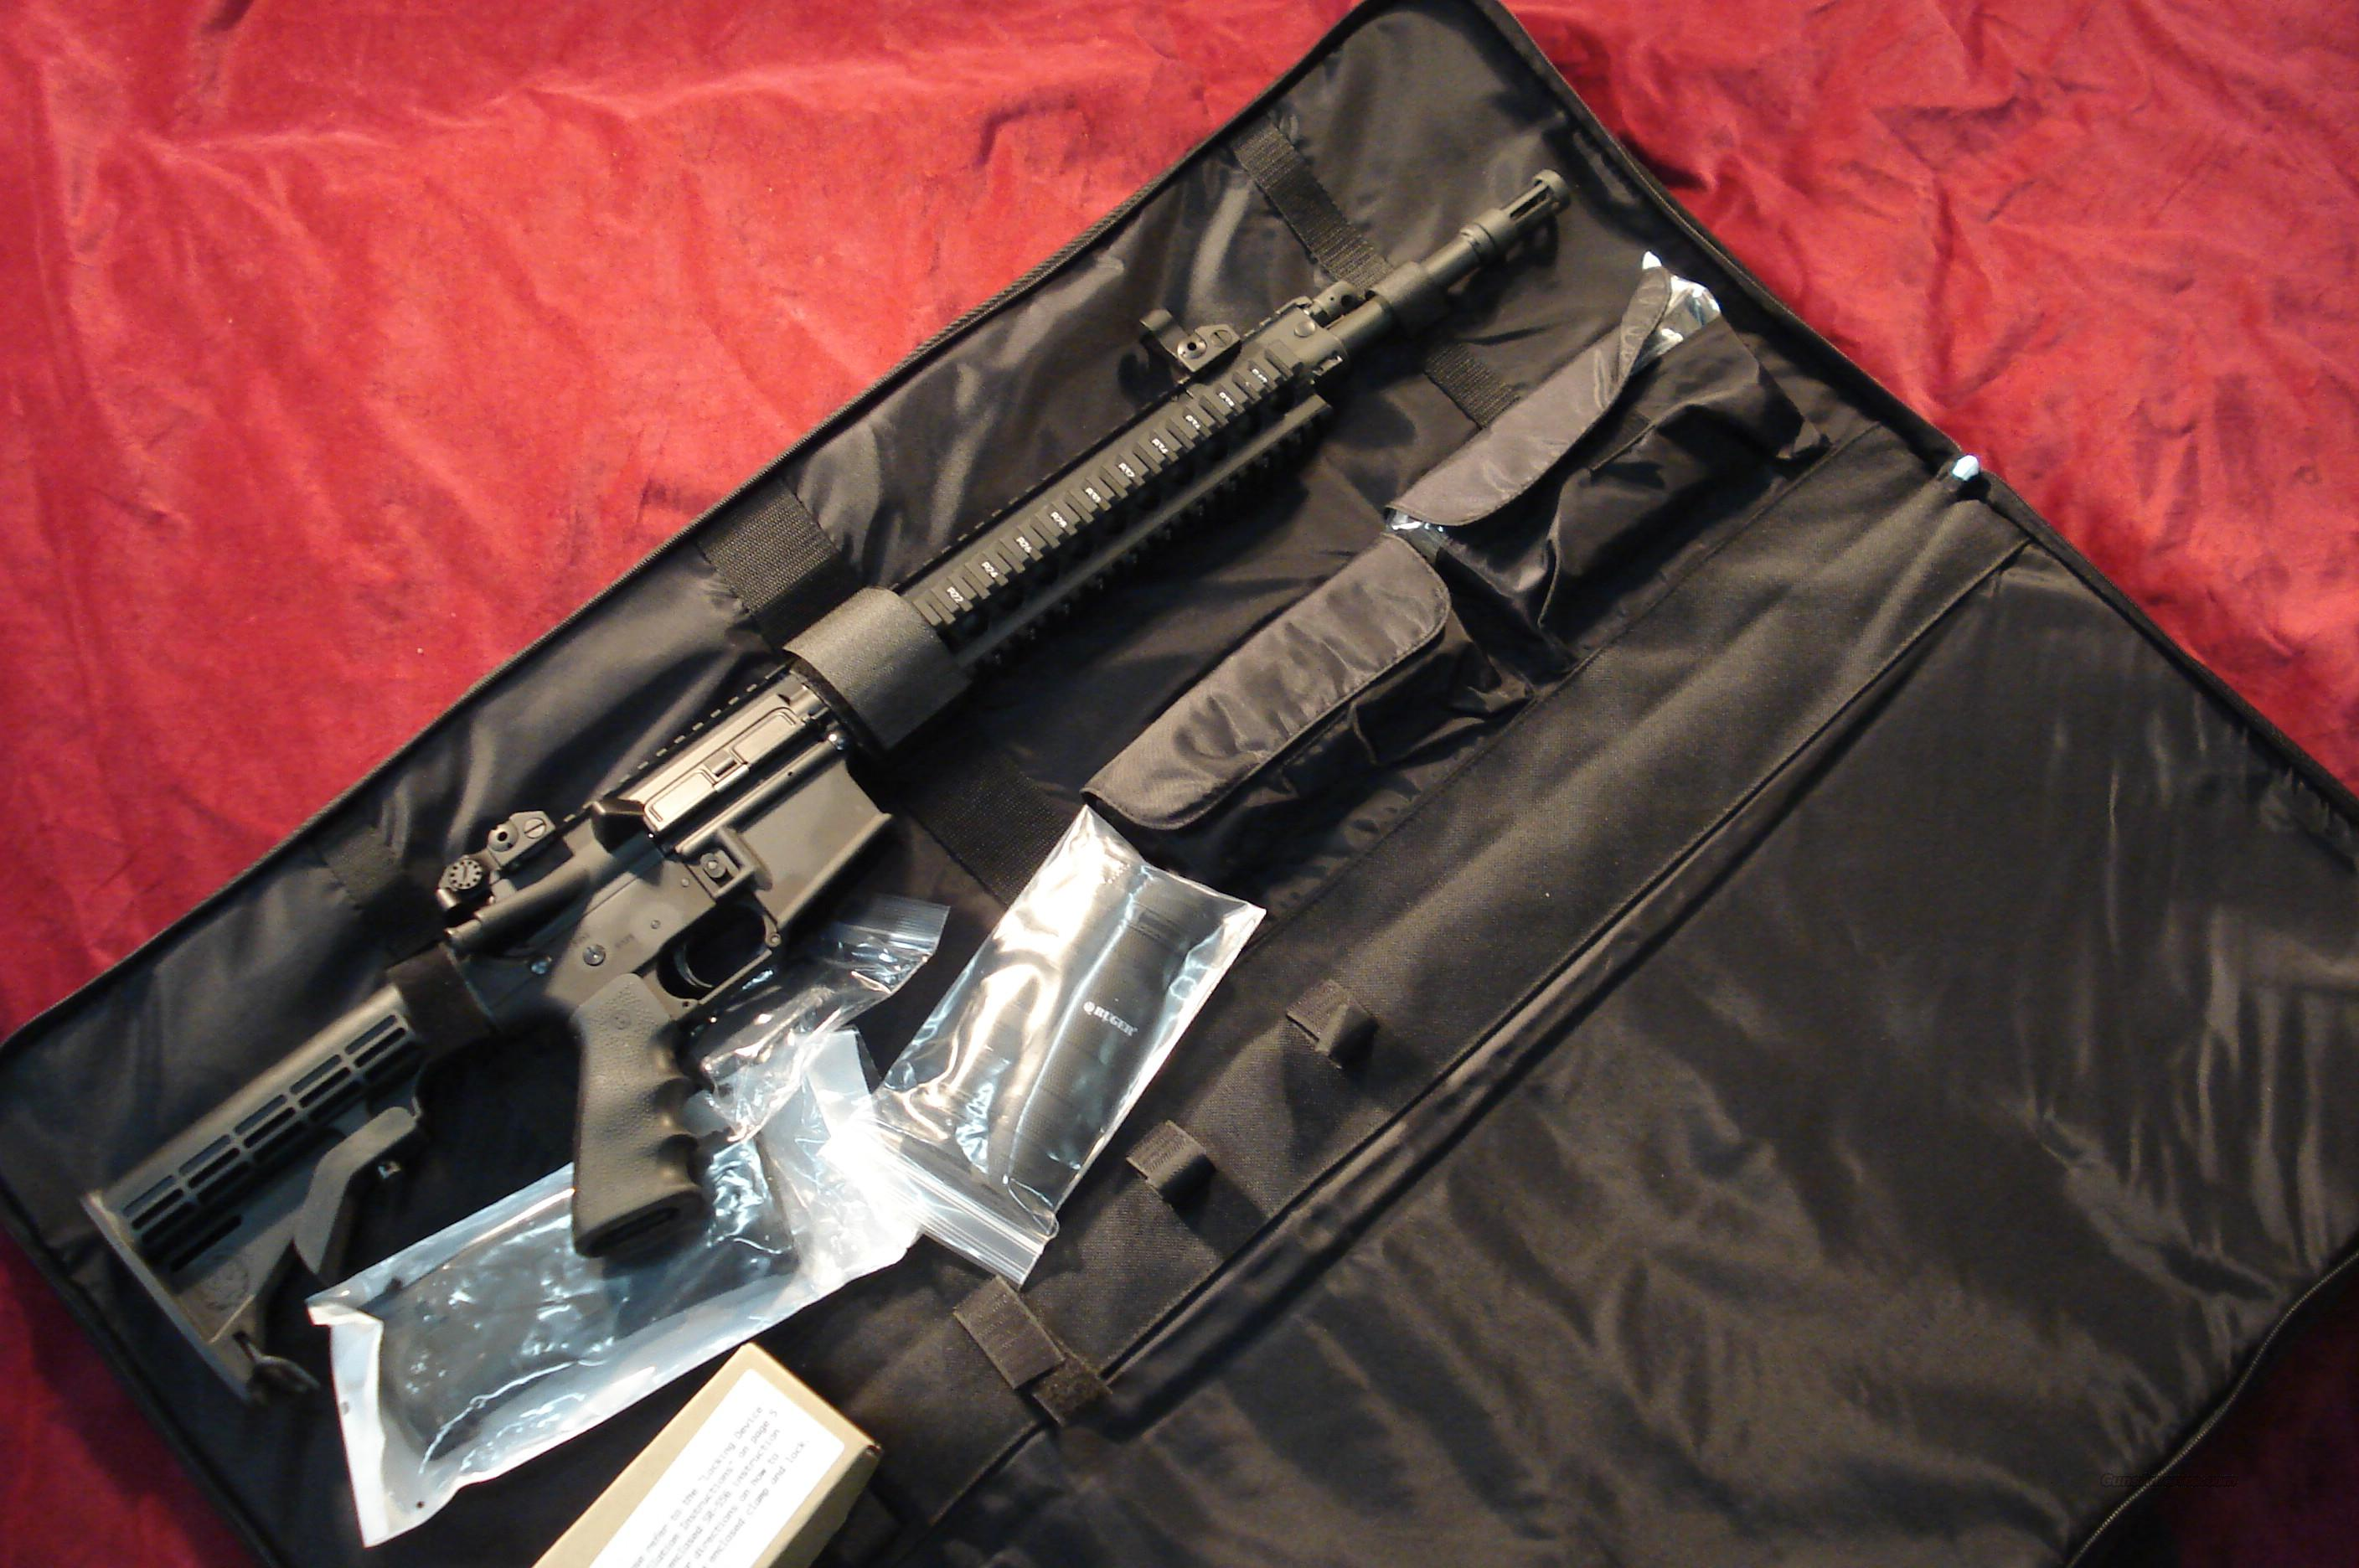 RUGER SR-556 GAS PISTON AR STYLE RIFLE  NEW  Guns > Rifles > Ruger Rifles > Mini-14 Type